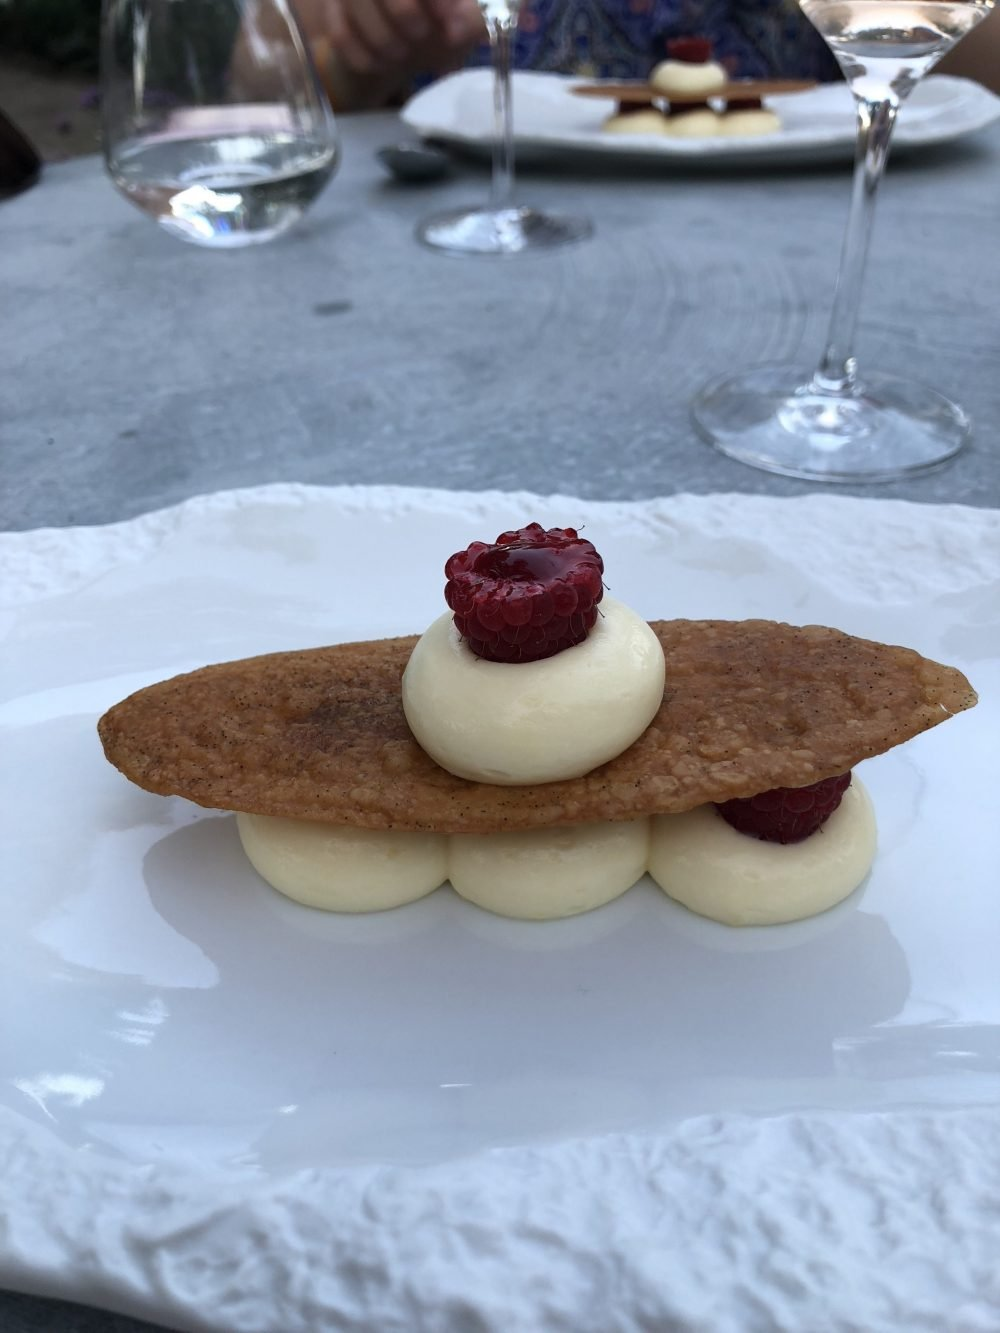 white chocolate mousse with a wafer and raspberries on a plate